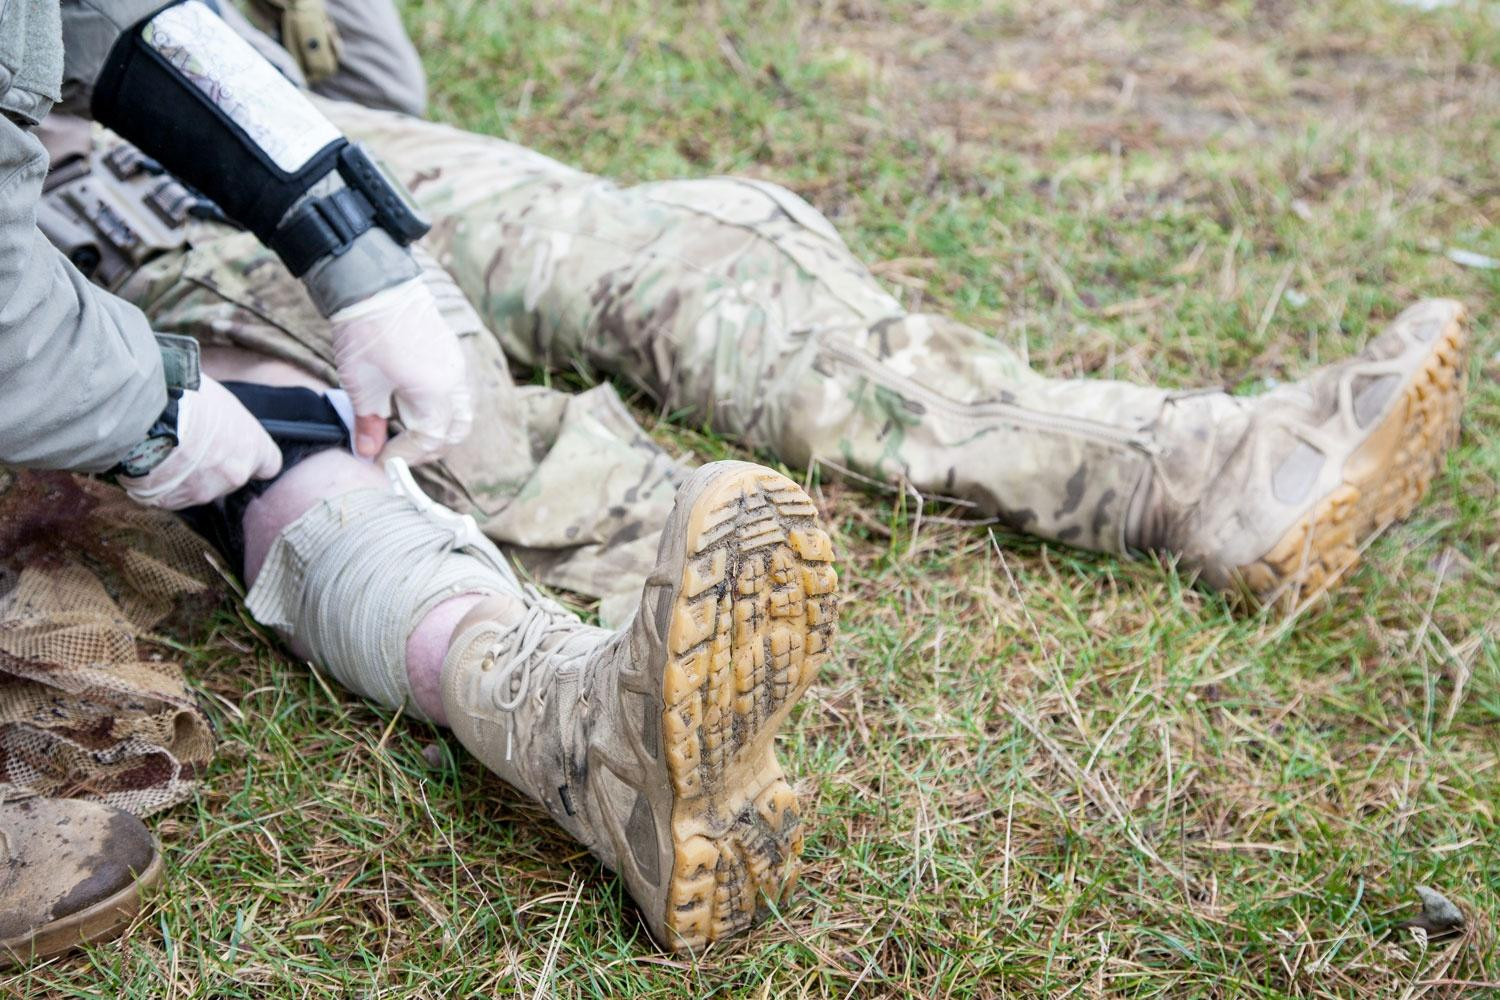 This bleeding virtual leg may help train combat medics to perform better in the field